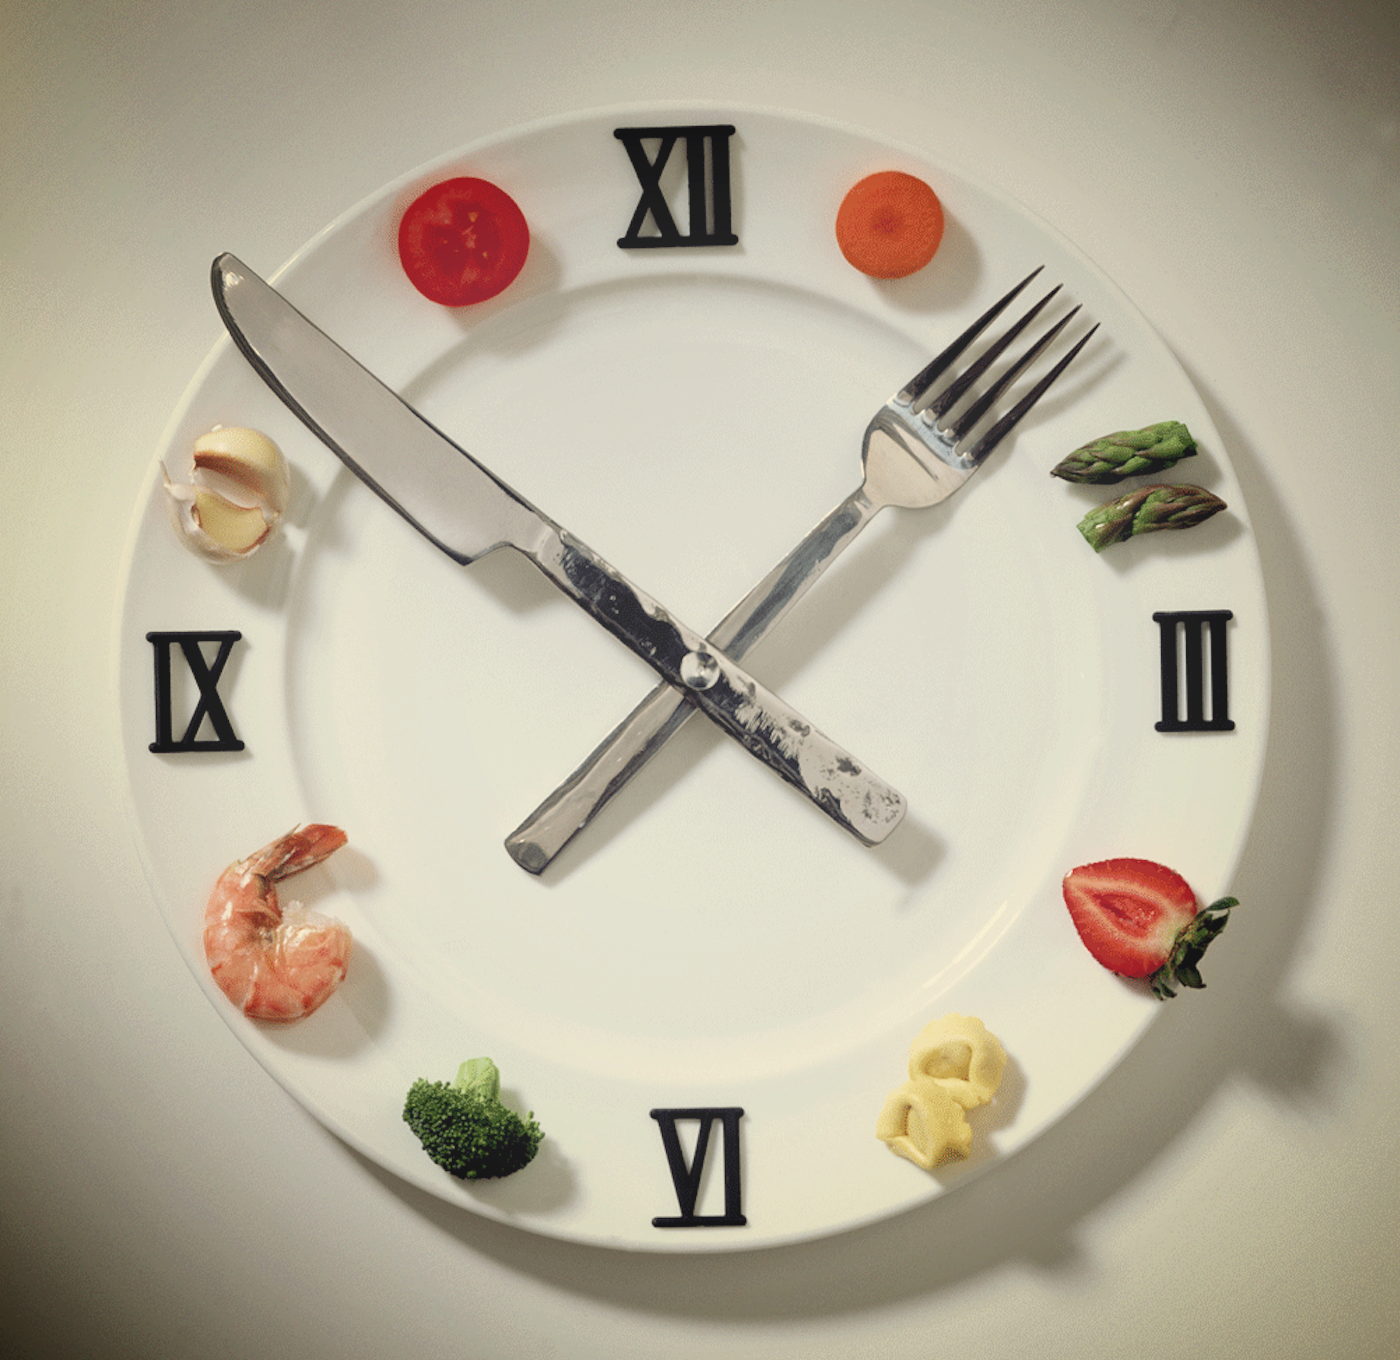 The clock is a powerful environmental trigger for eating